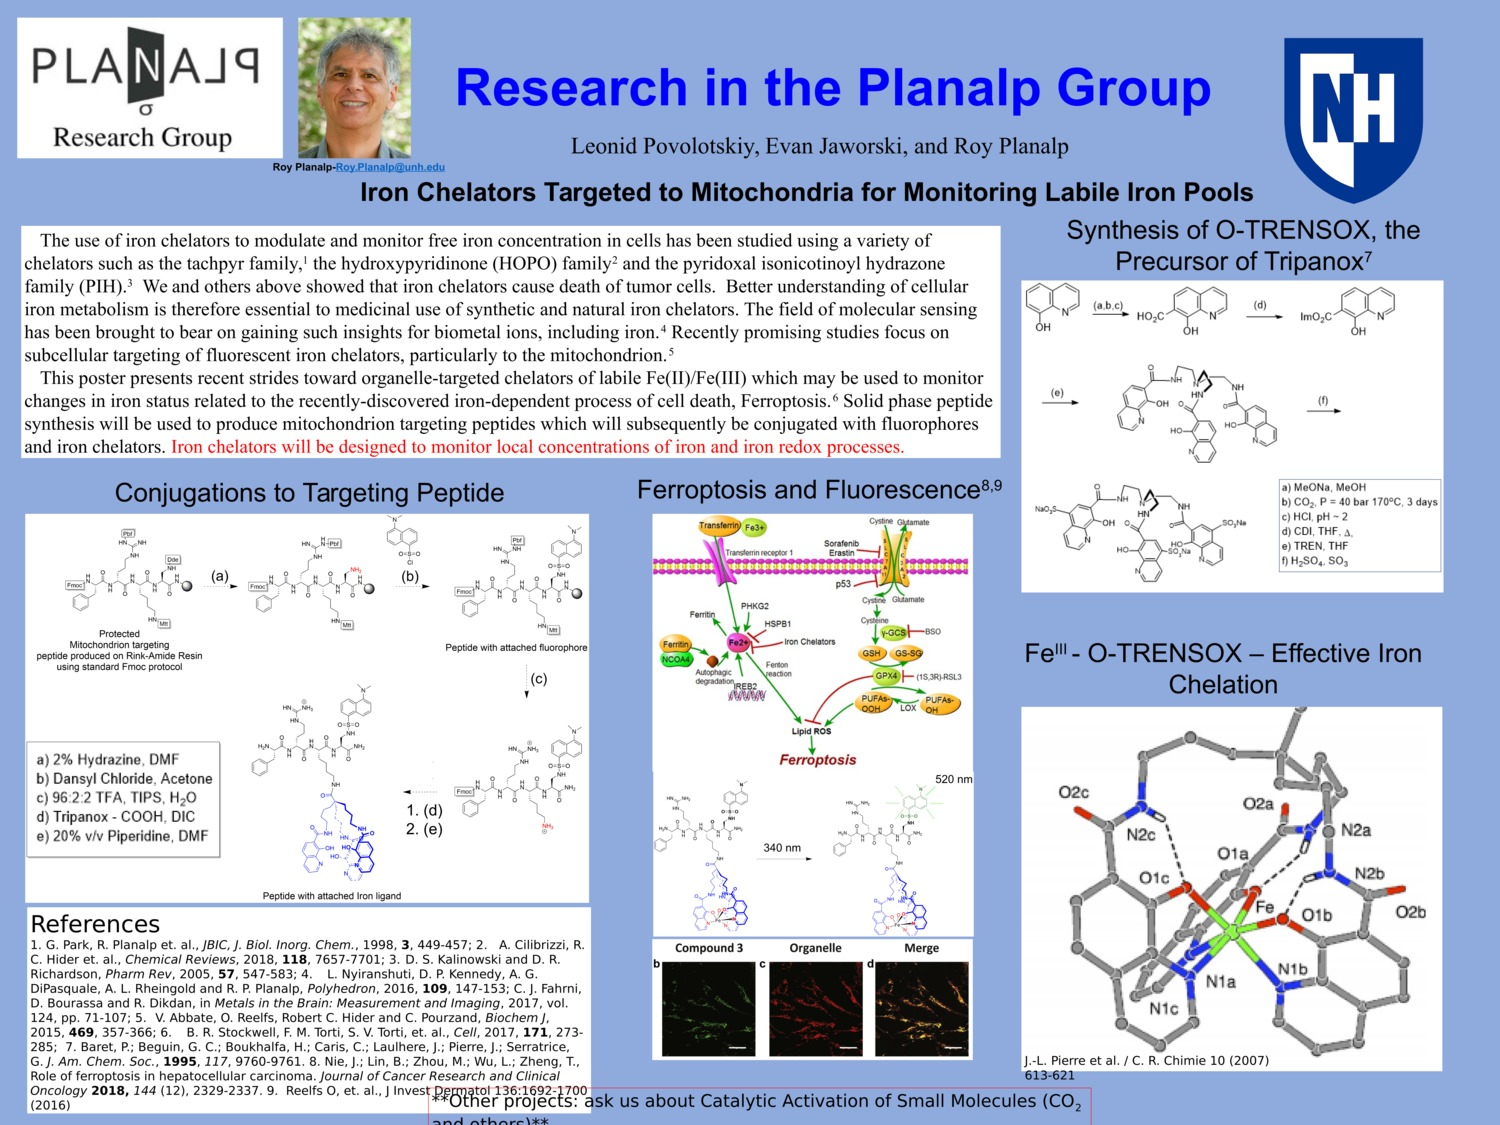 Planalp Research Group Sp2019 by EvanJaws